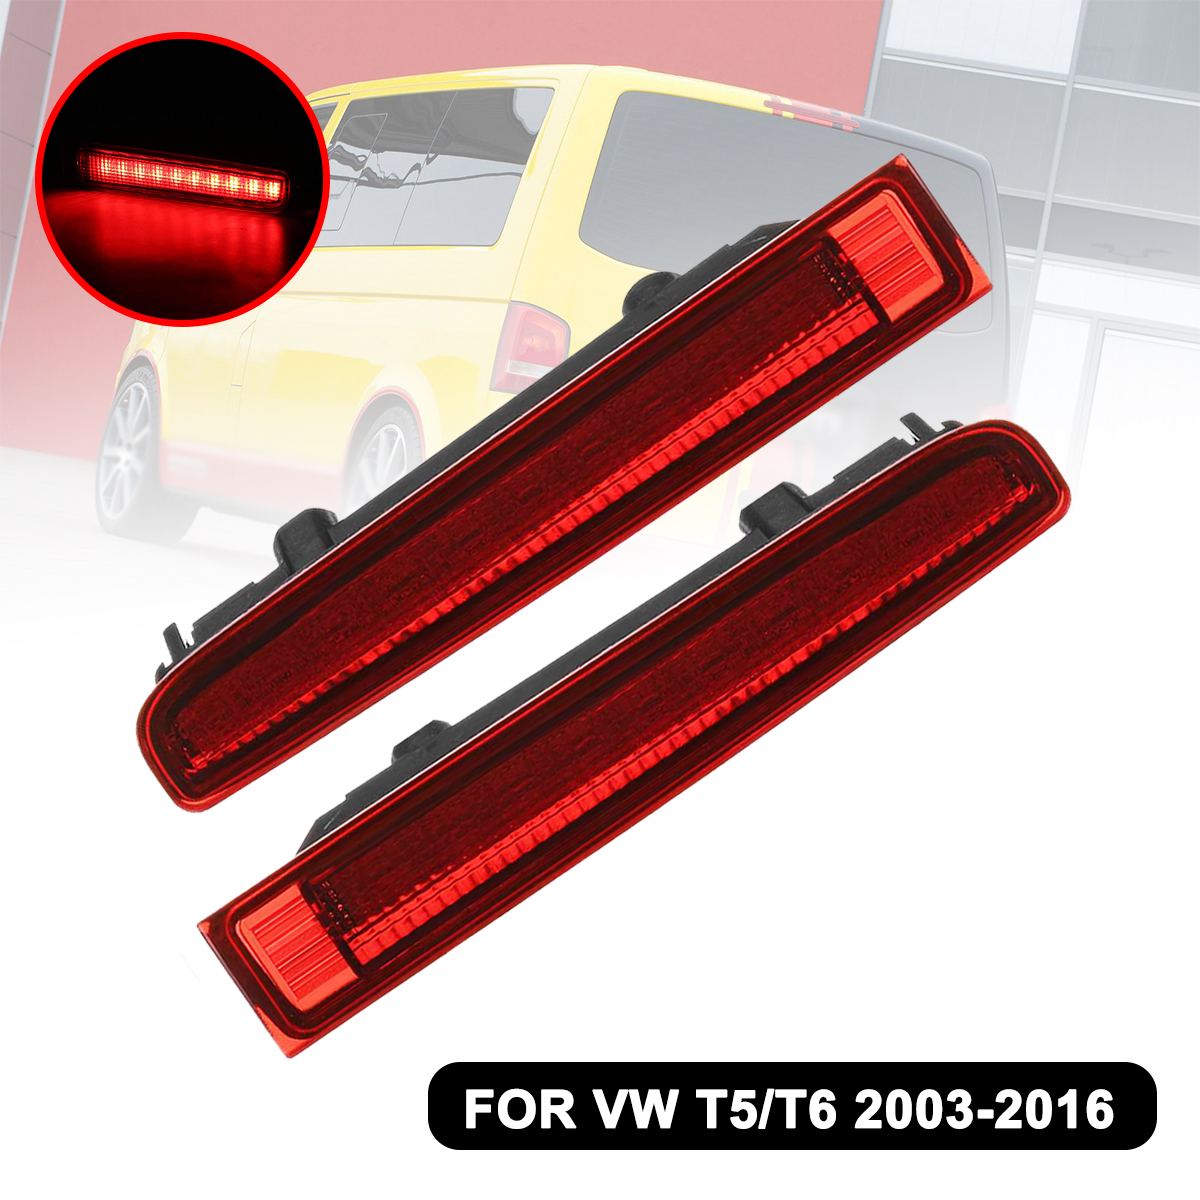 1 Pair Car Additional High Brake Stop <font><b>Light</b></font> Third For <font><b>VW</b></font> <font><b>T5</b></font> T6 for Transporter 2003-2016 High Mount Warning Turn Signal <font><b>LED</b></font> Lamp image